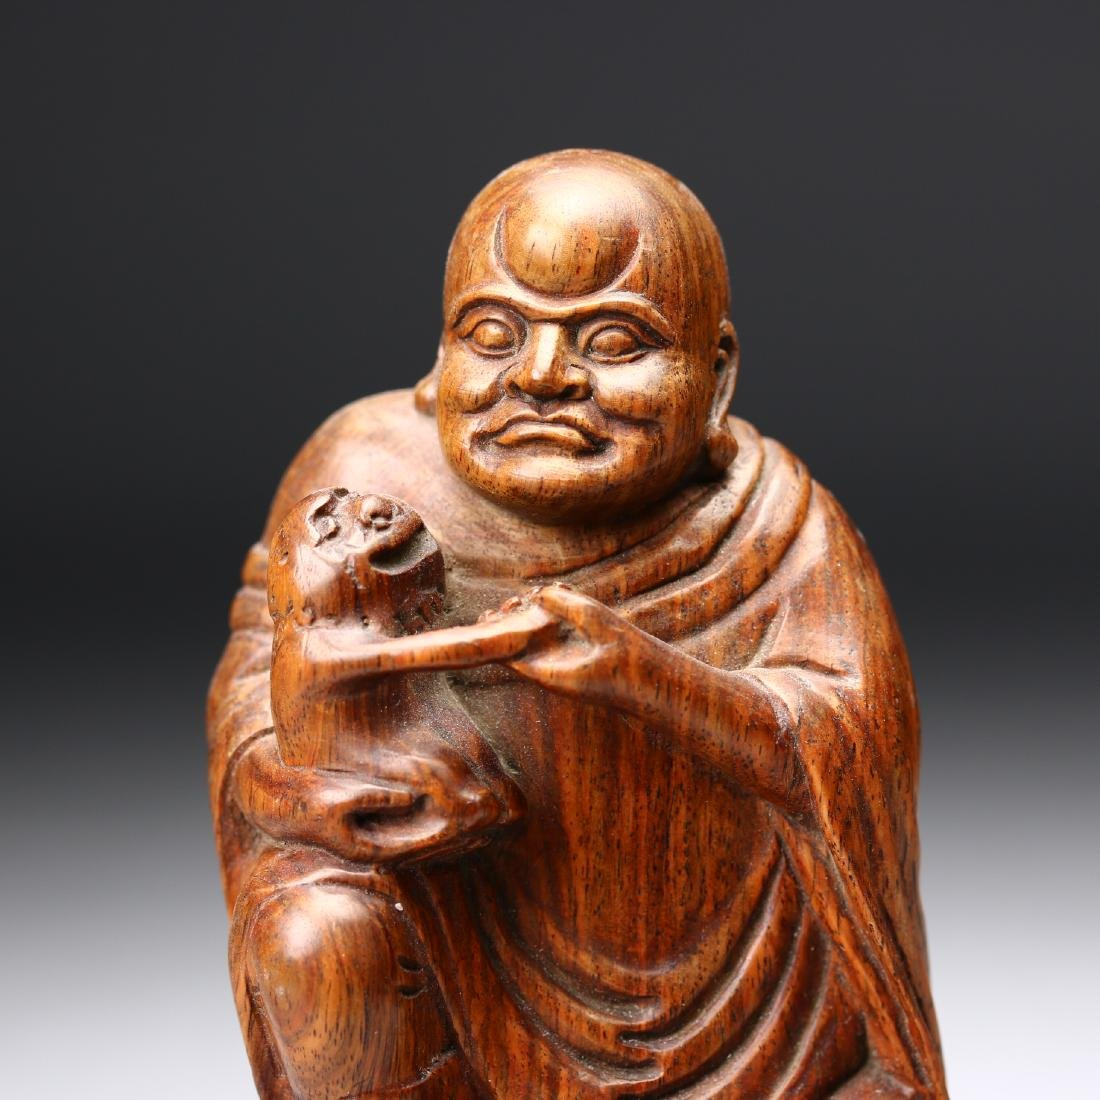 A Chinese Huangyang Wood Carved Figure - 2